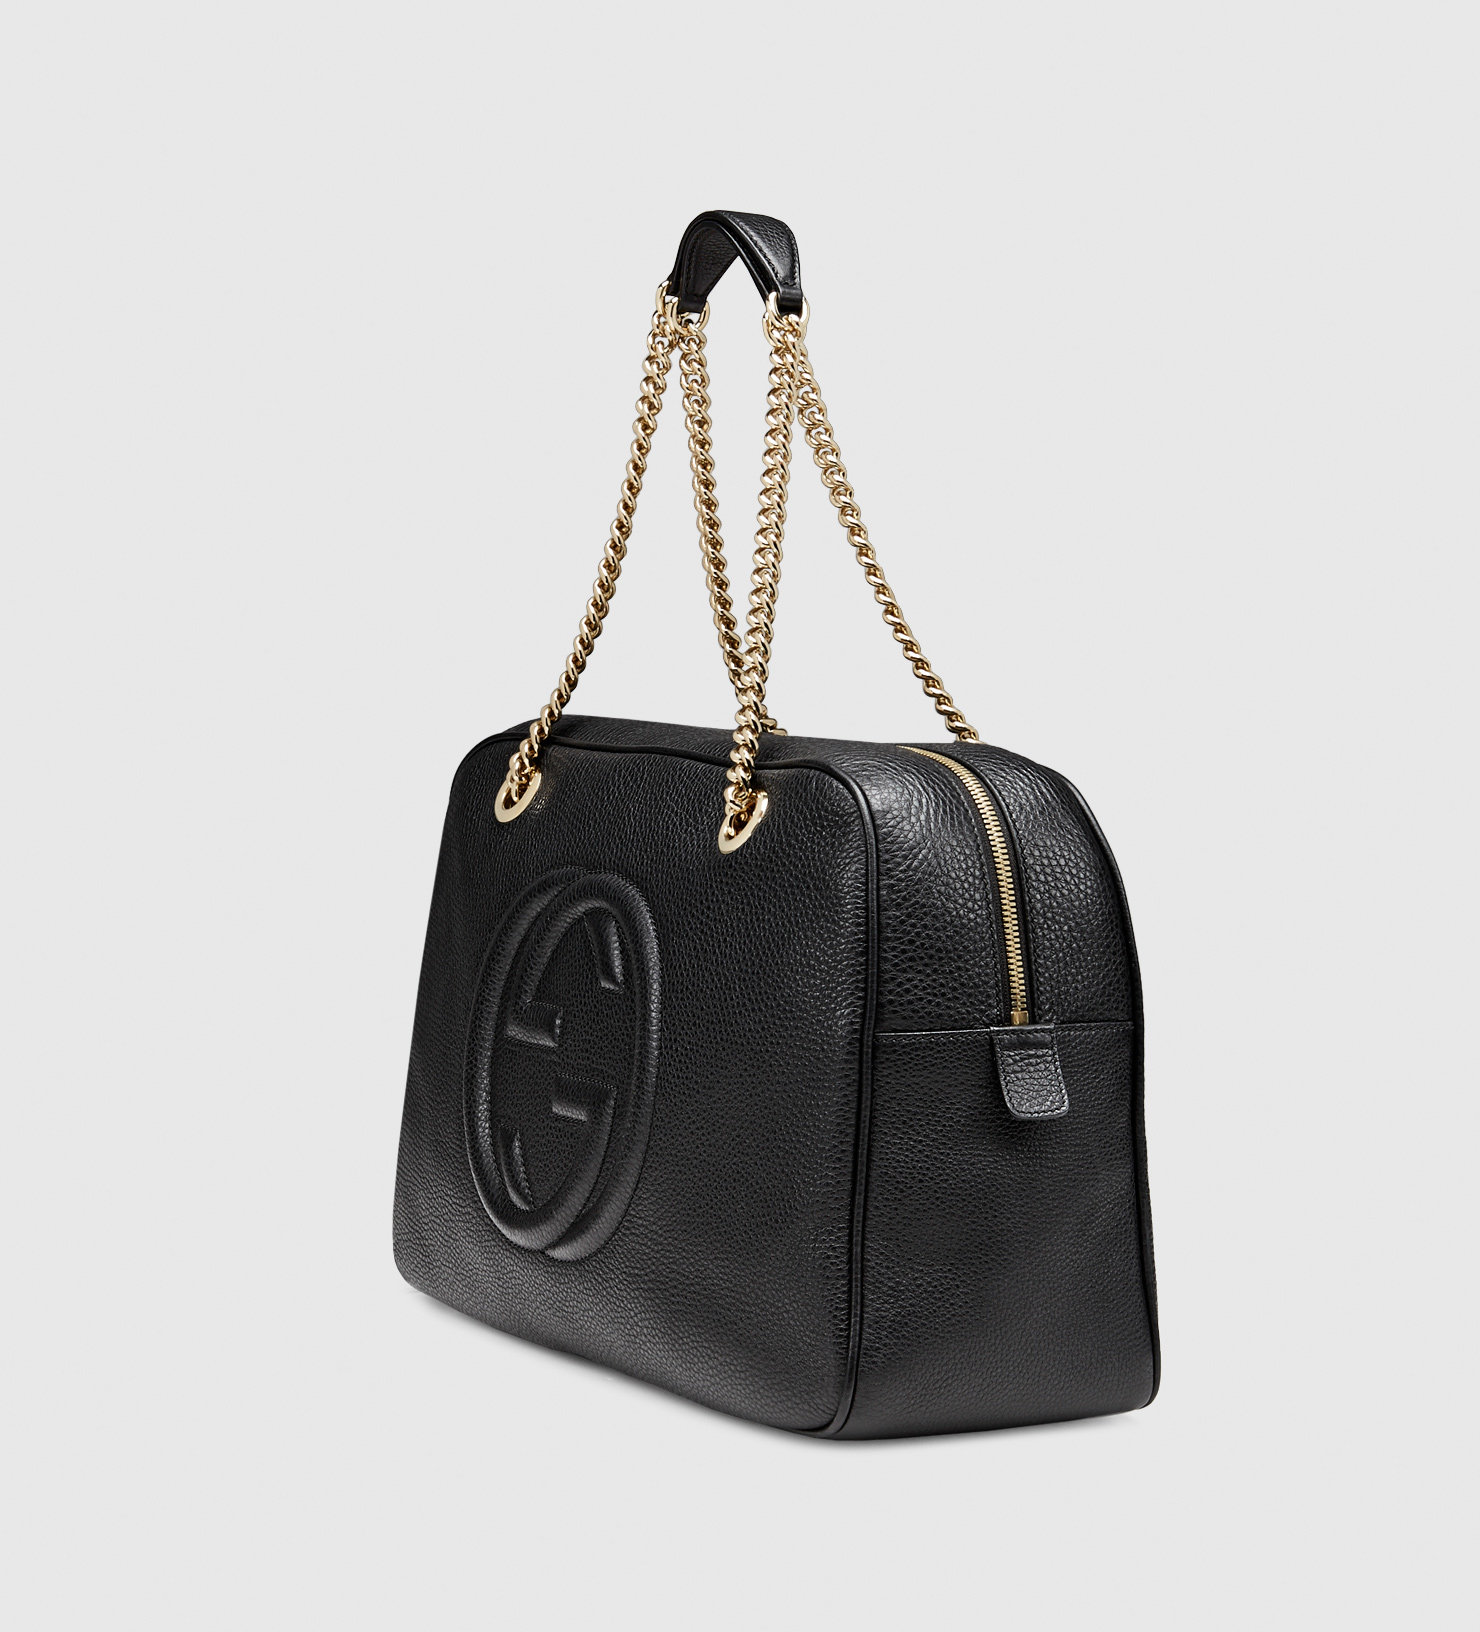 lyst gucci soho leather shoulder bag in black. Black Bedroom Furniture Sets. Home Design Ideas